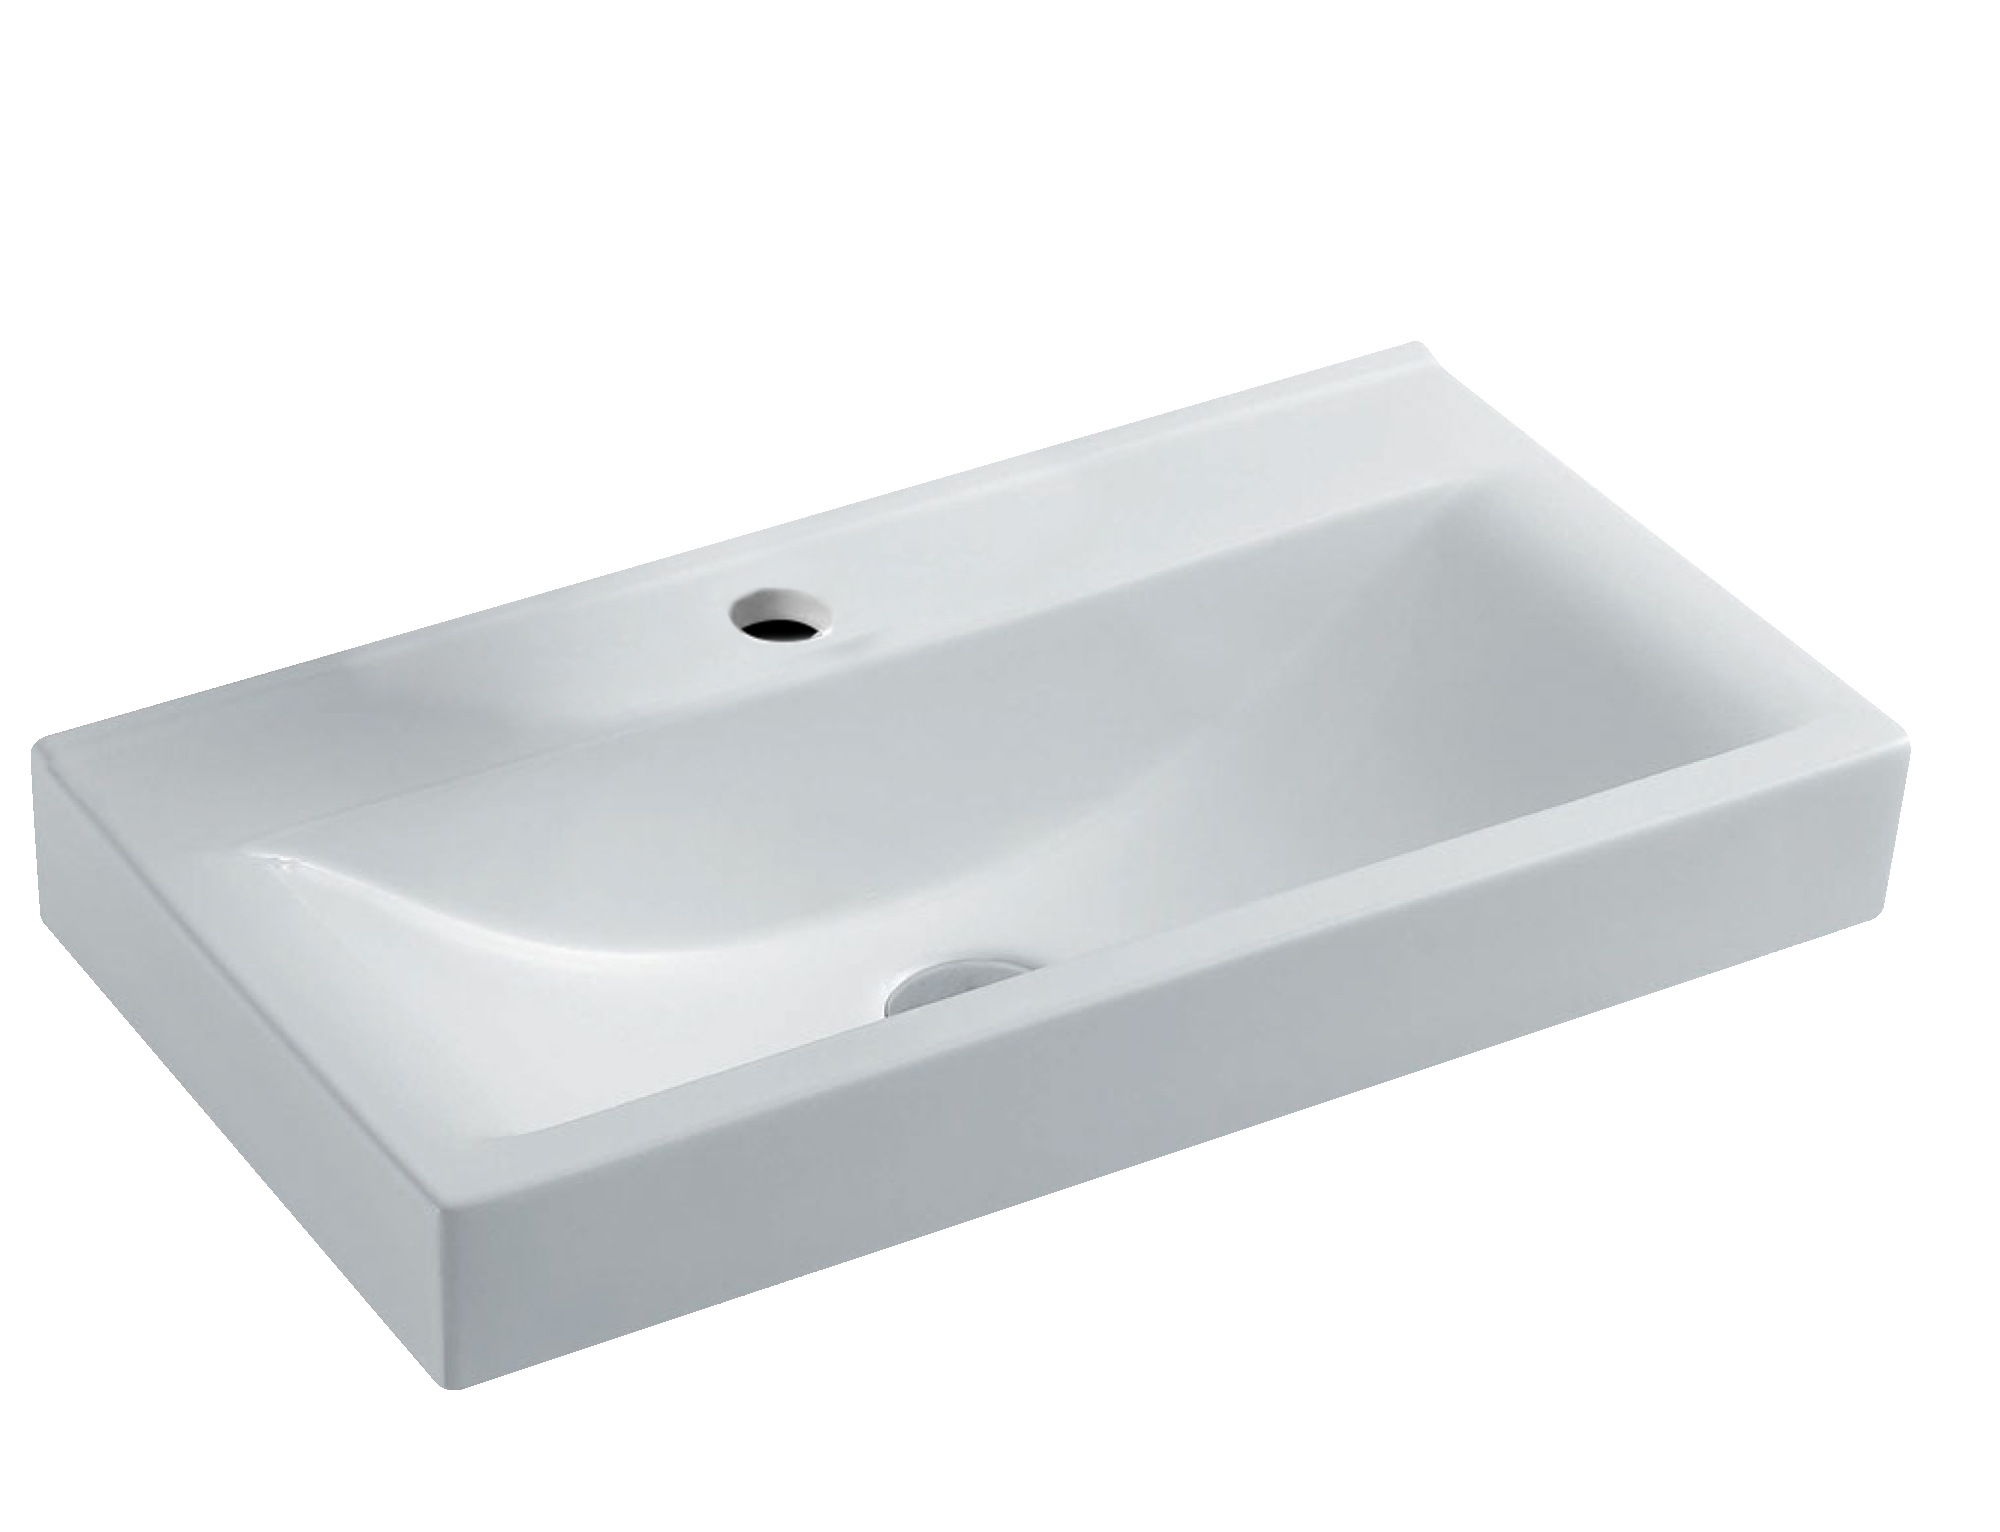 Choose One Of Our Stunning White Porcelain Drop In Sinks A Beautiful Timeless Addition To Your Home This Drop In Sink For Single Hole Faucets Fea Drop In Sink